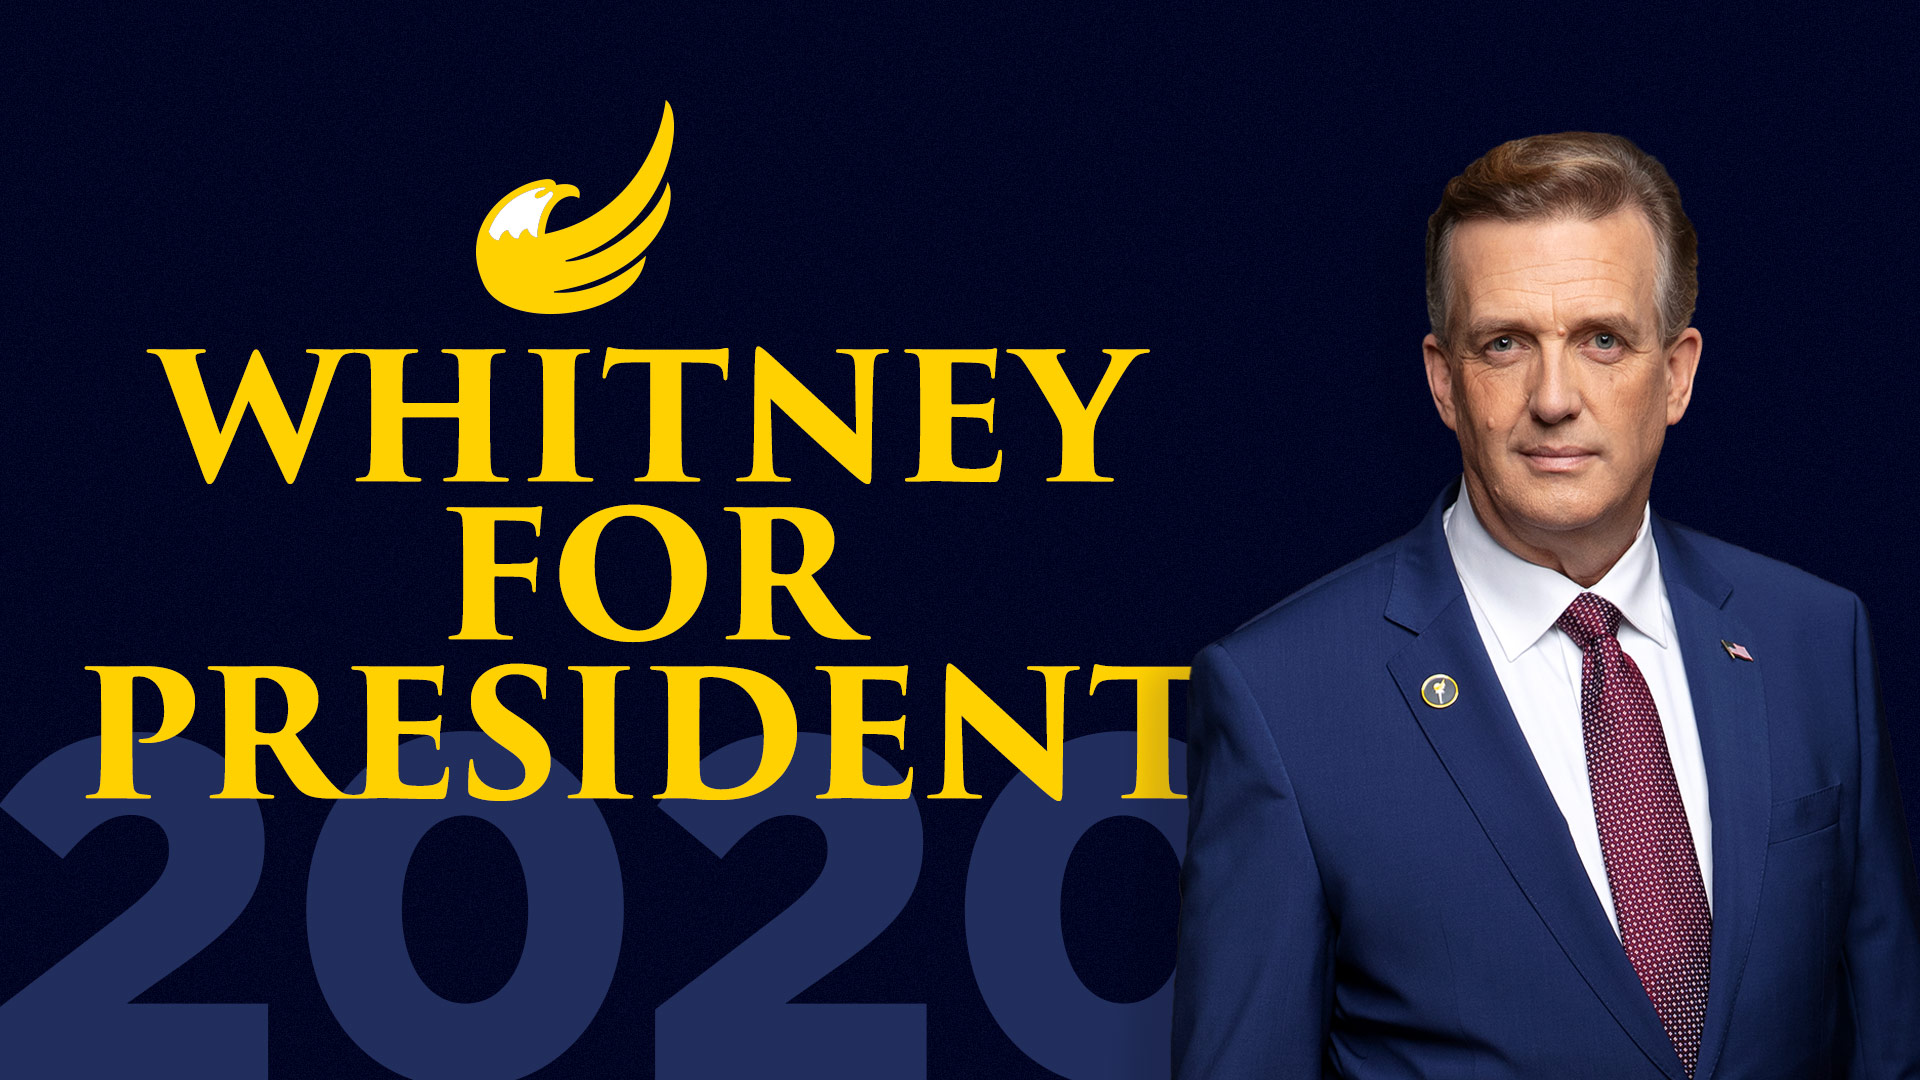 Whitney 2020 Inc